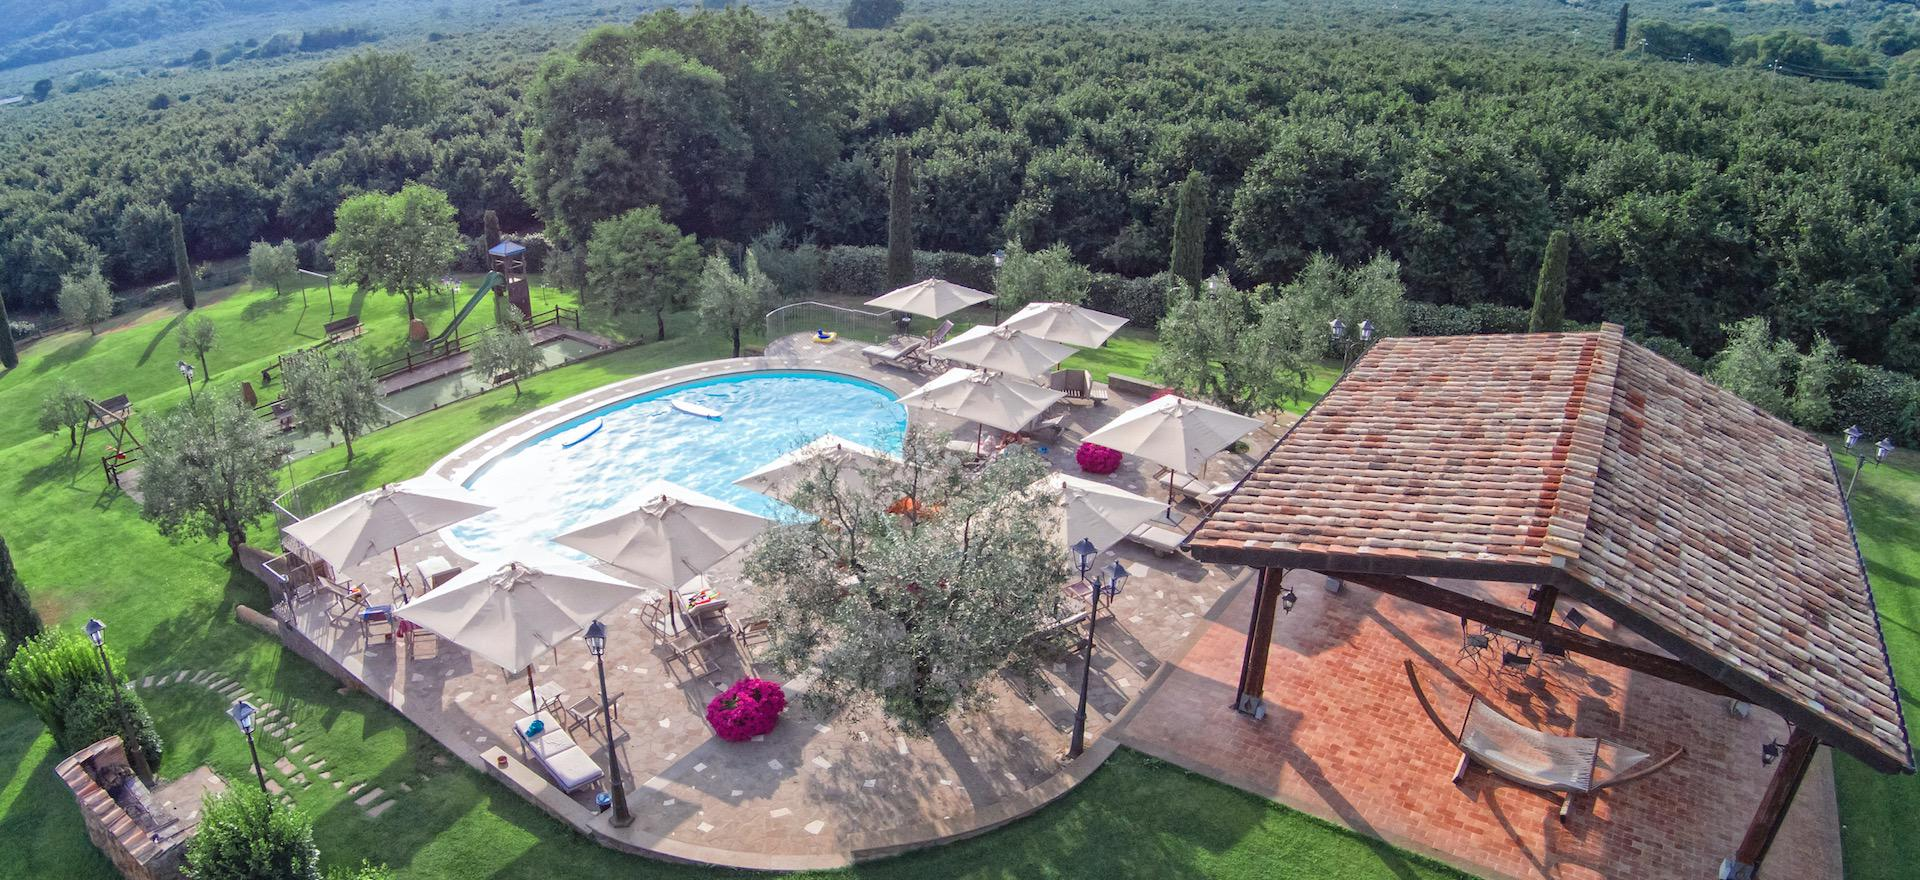 Agriturismo Umbria Agriturismo near lake and hour from Rome